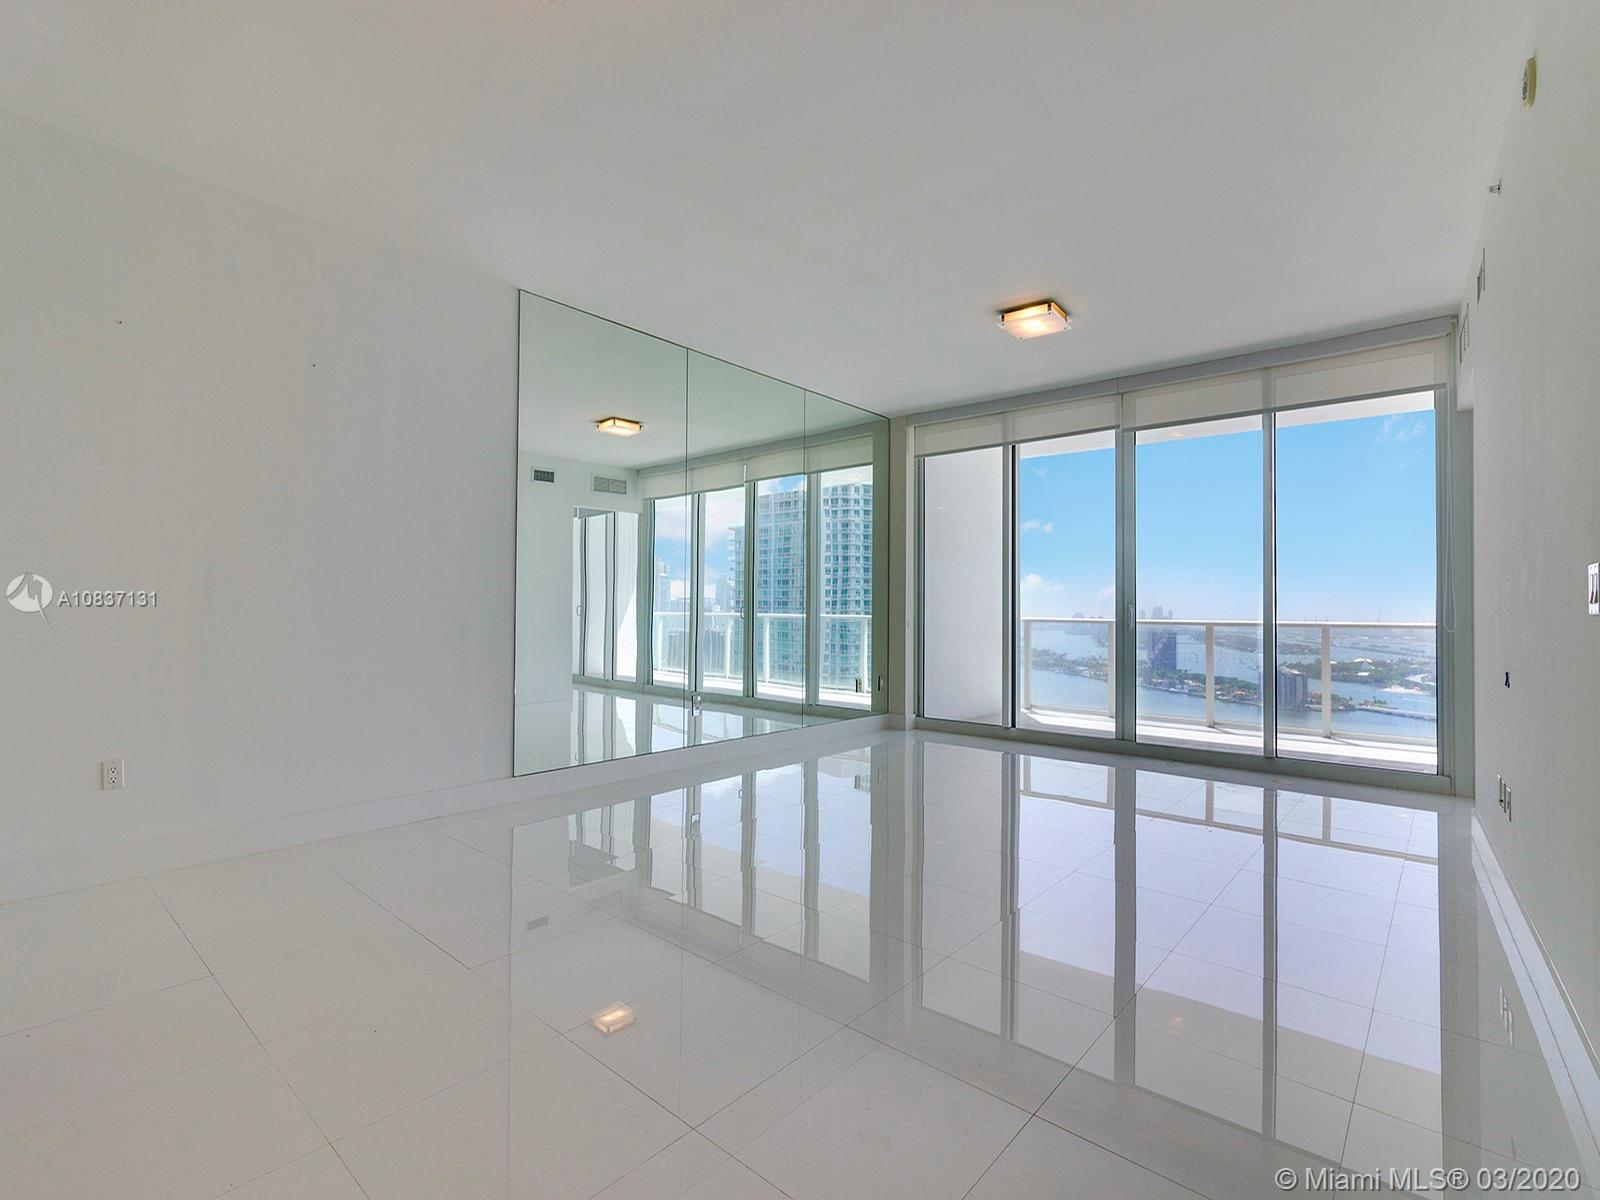 High floor flow-thru 3 Beds and 3 Baths residence at Paramount Bay. Unobstructed views of Bay, Miami